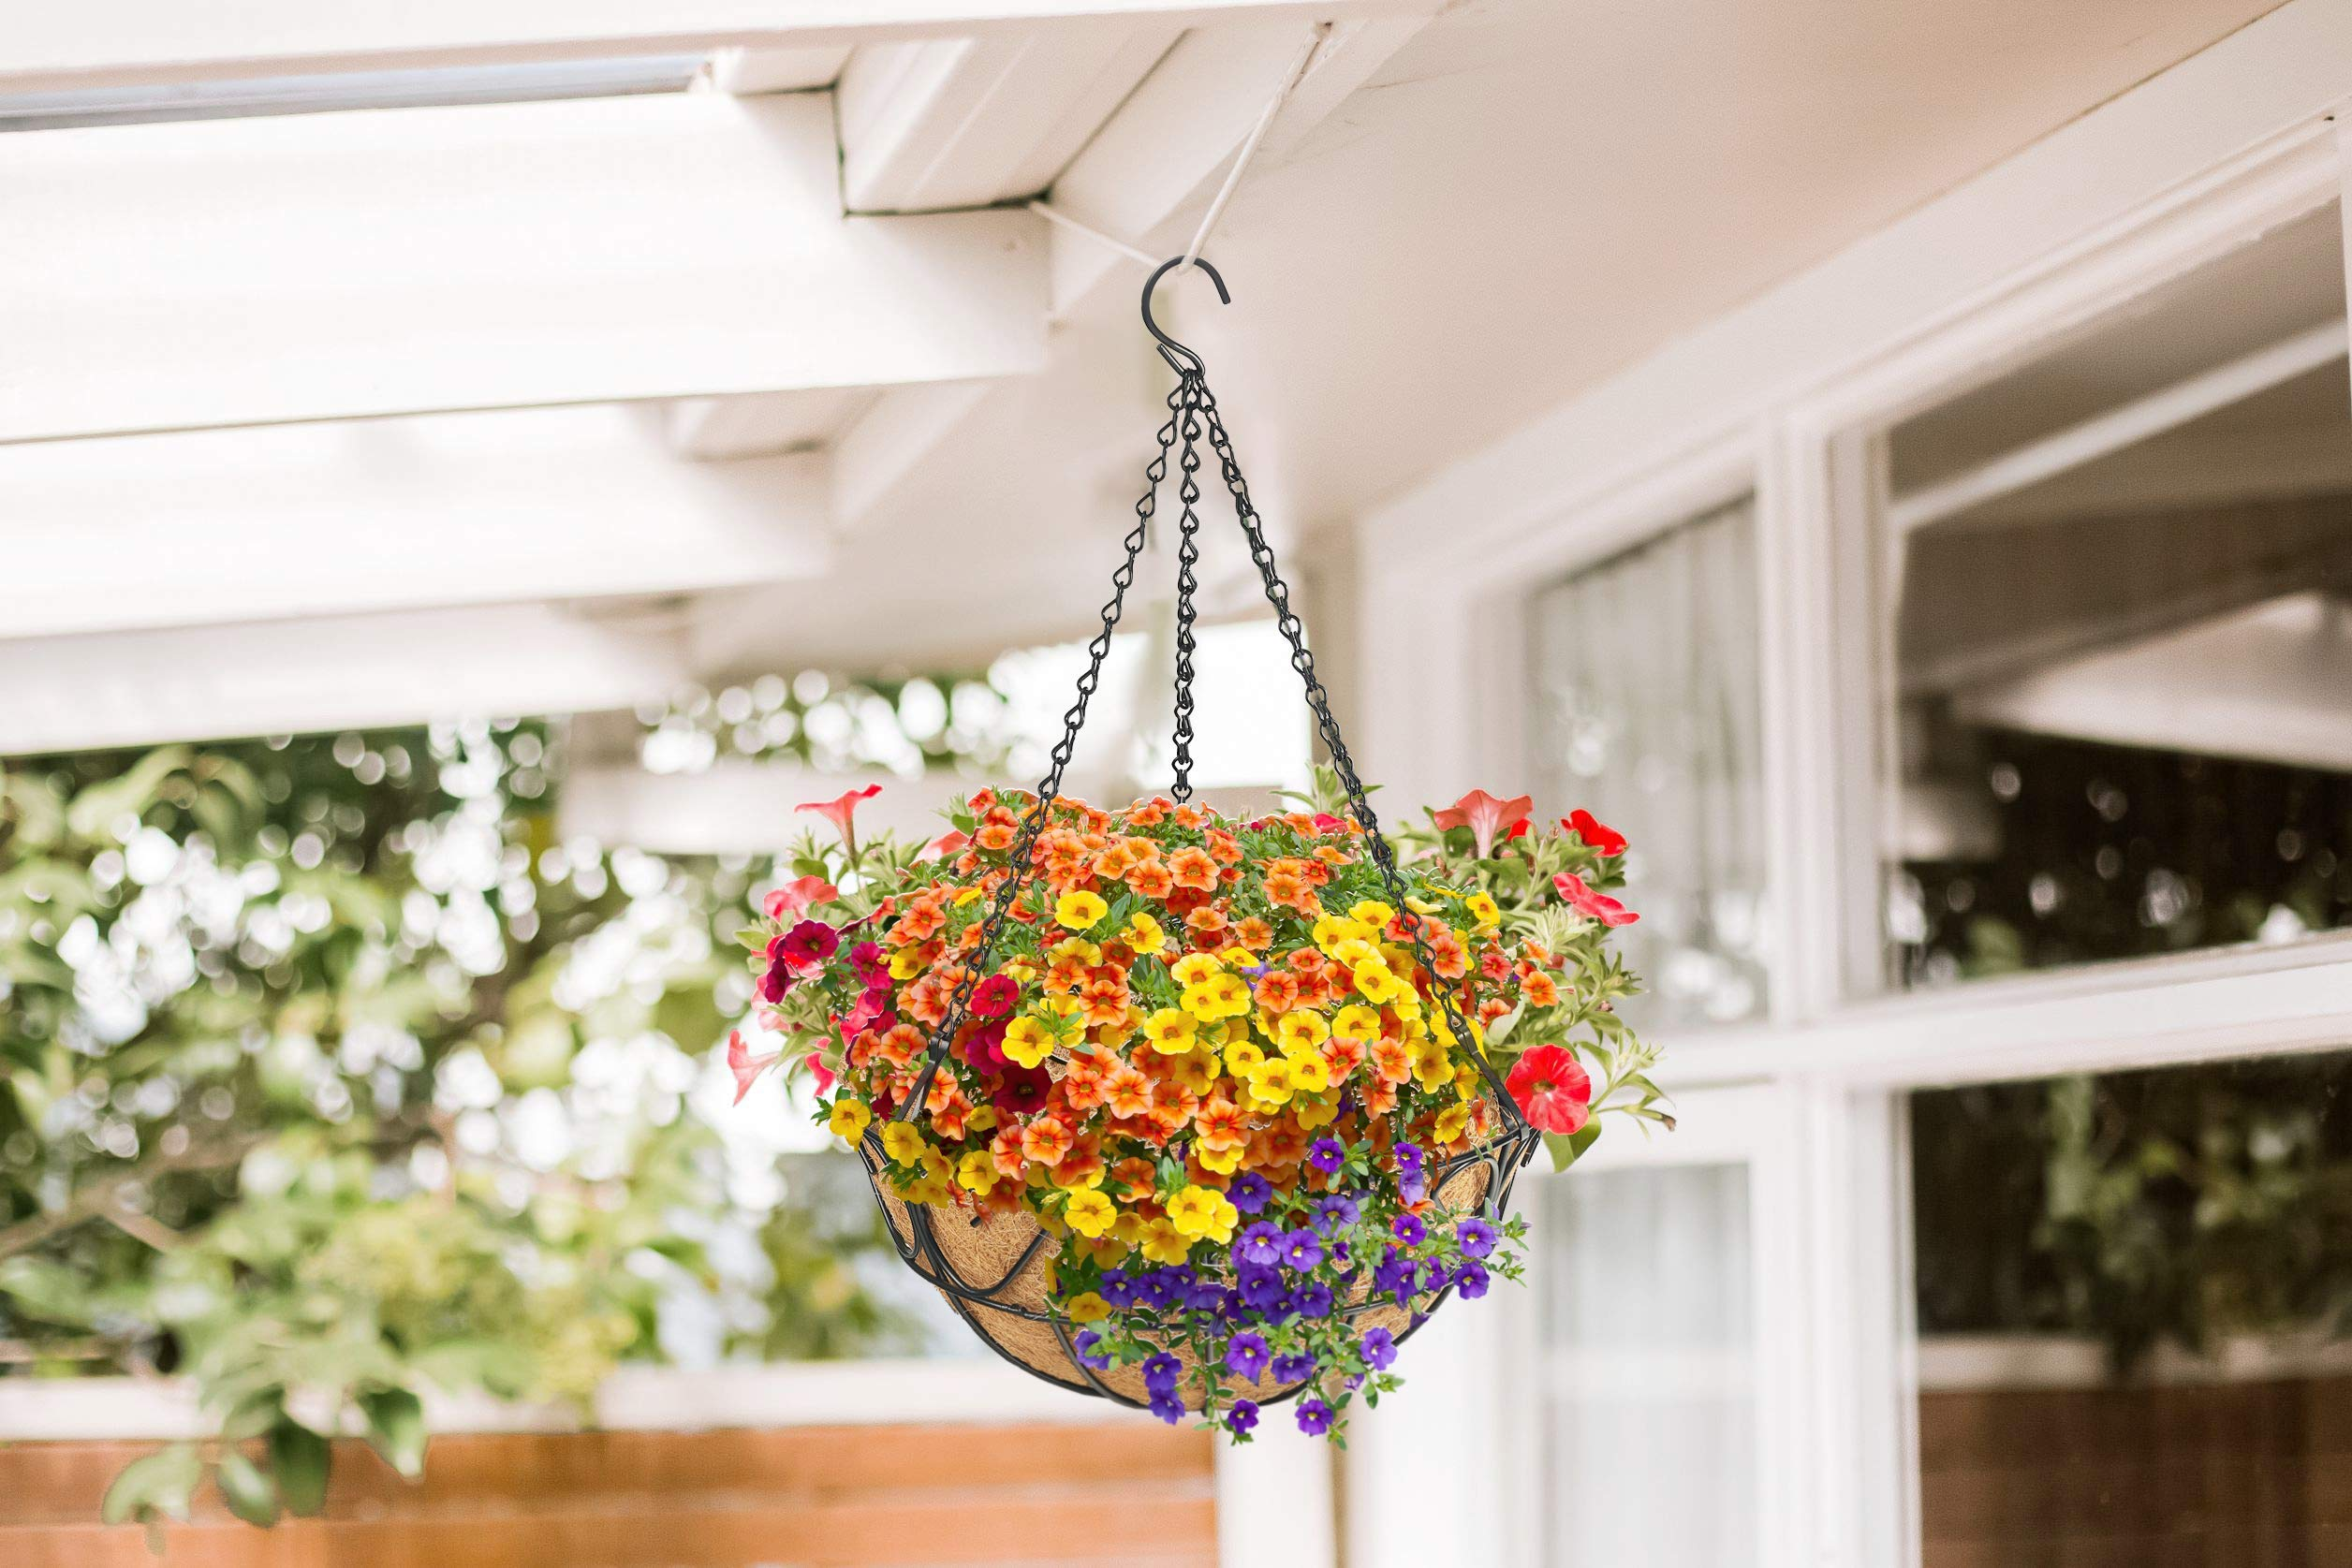 Metal Hanging Planter Basket